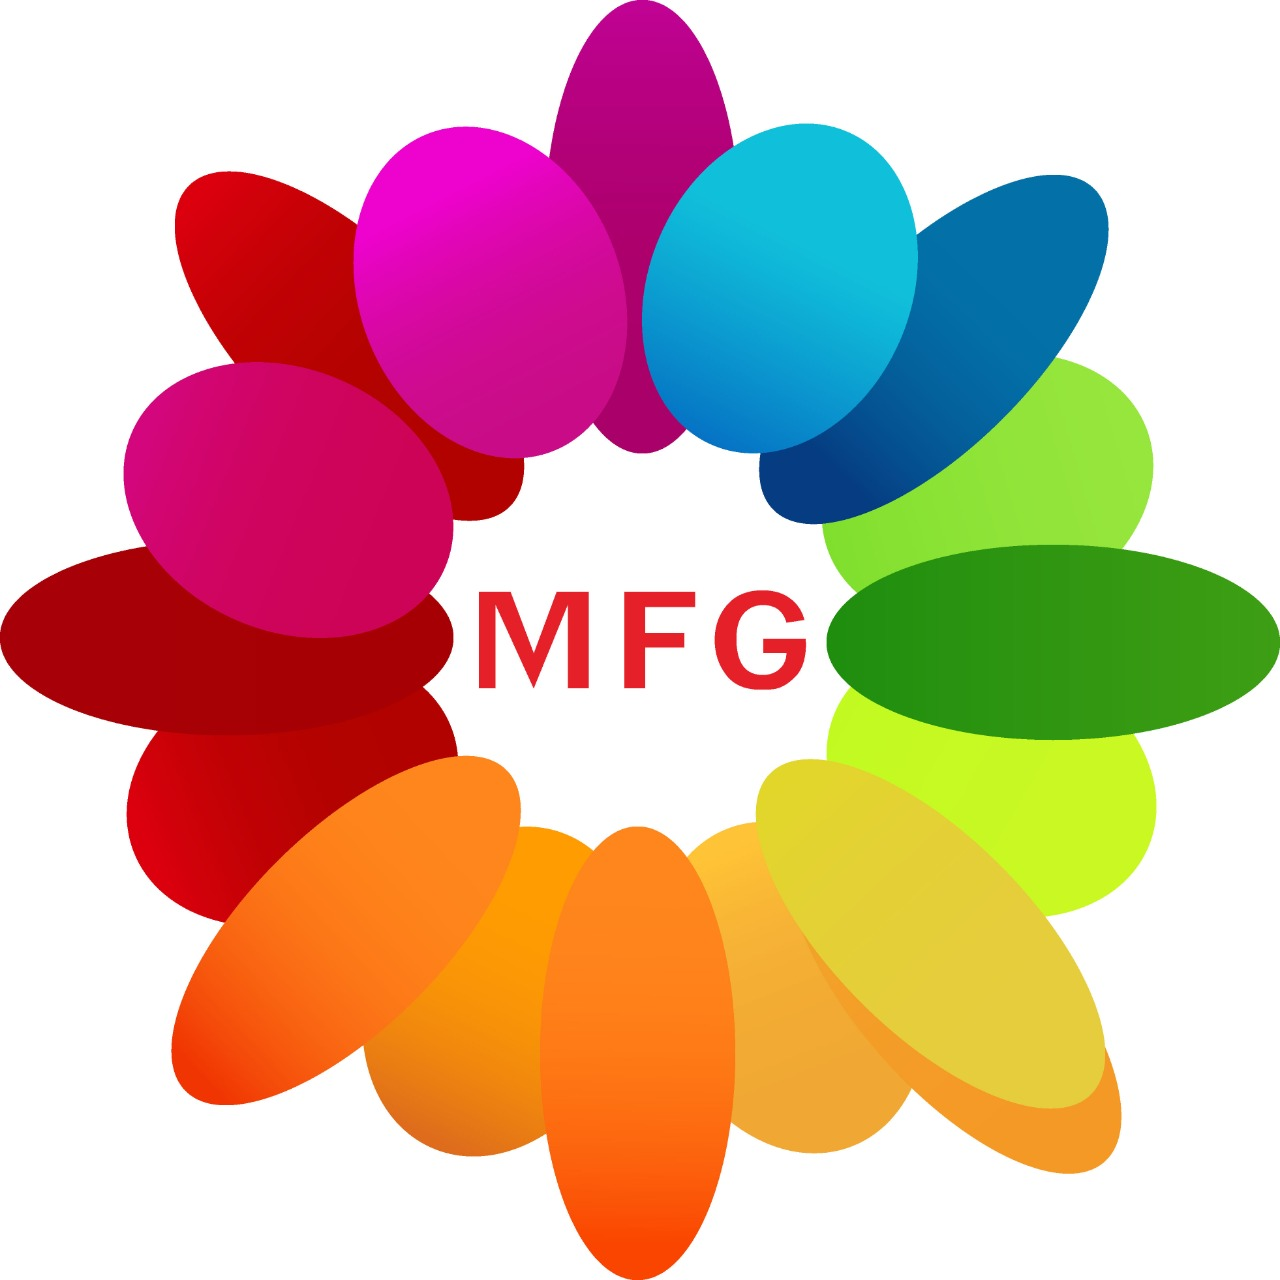 Basket of 50 red roses with box of Half kg assorted dry fruits